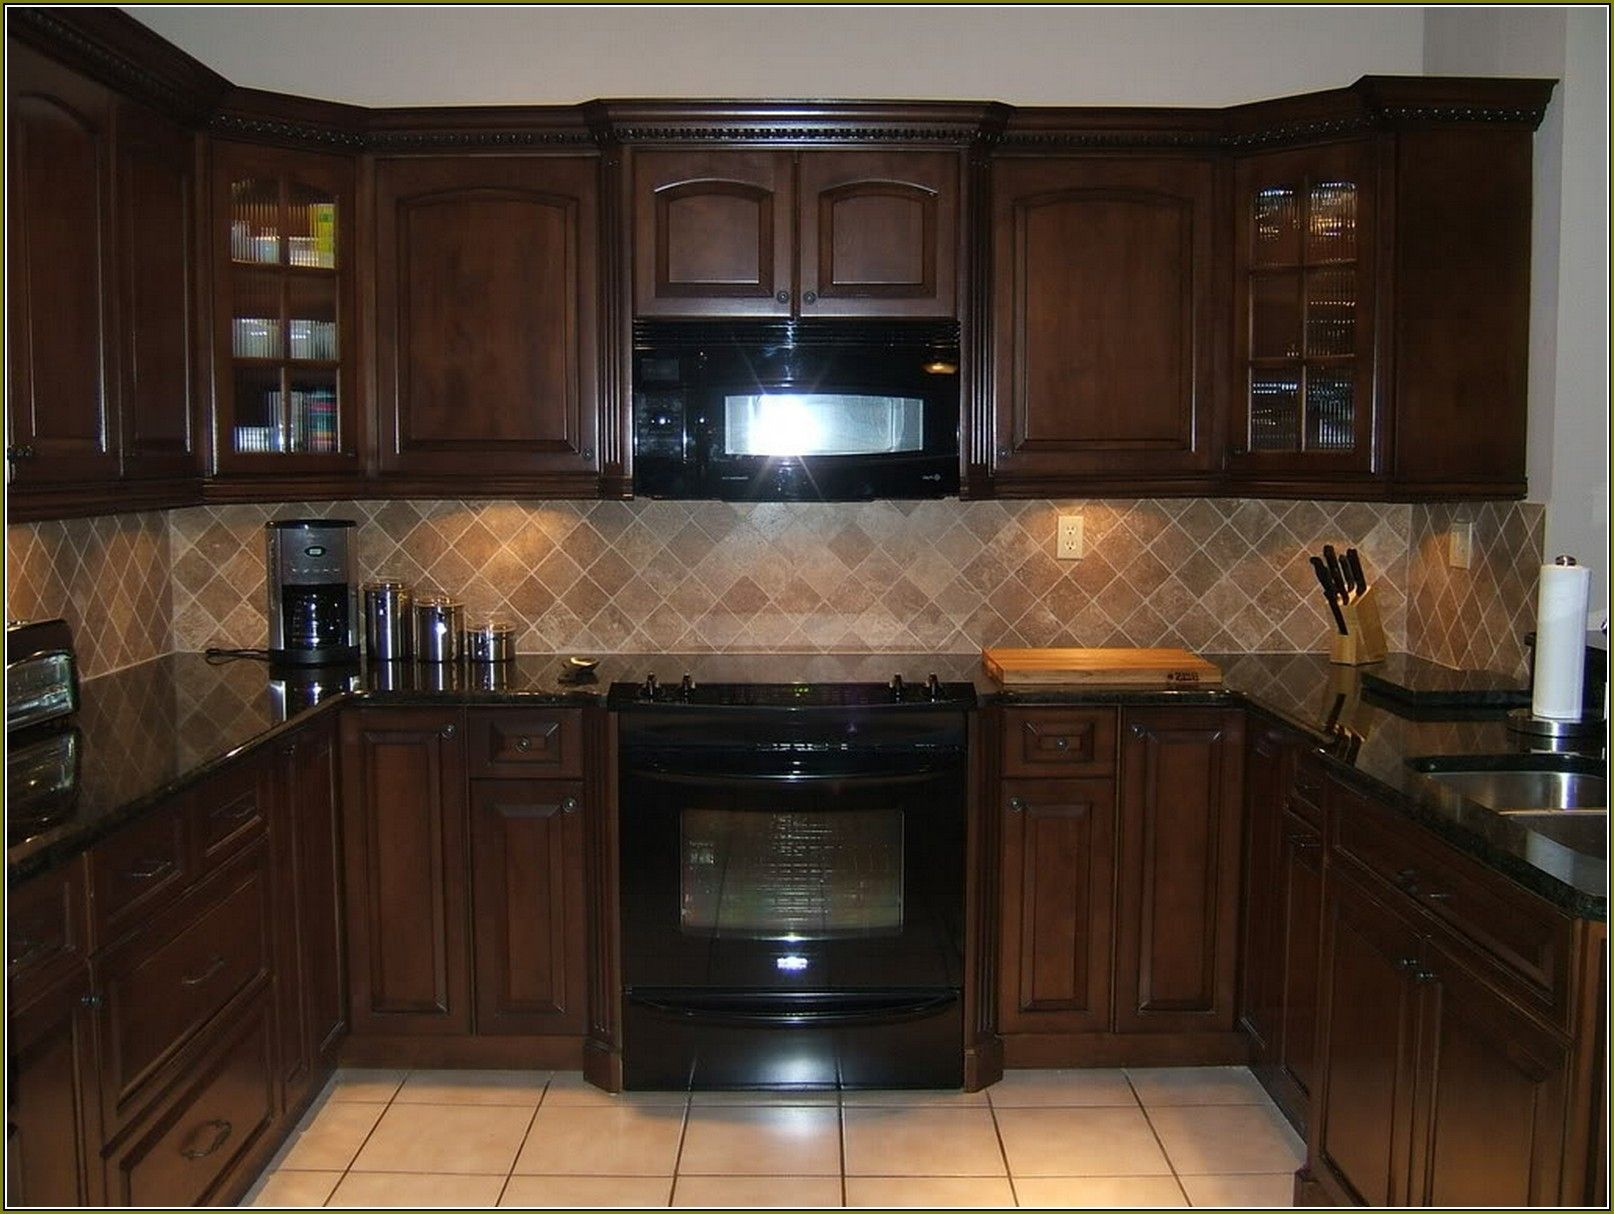 Walnut Kitchen Cabinets With Black Appliances Brown Kitchen Cabinets Black Appliances Kitchen Espresso Kitchen Cabinets